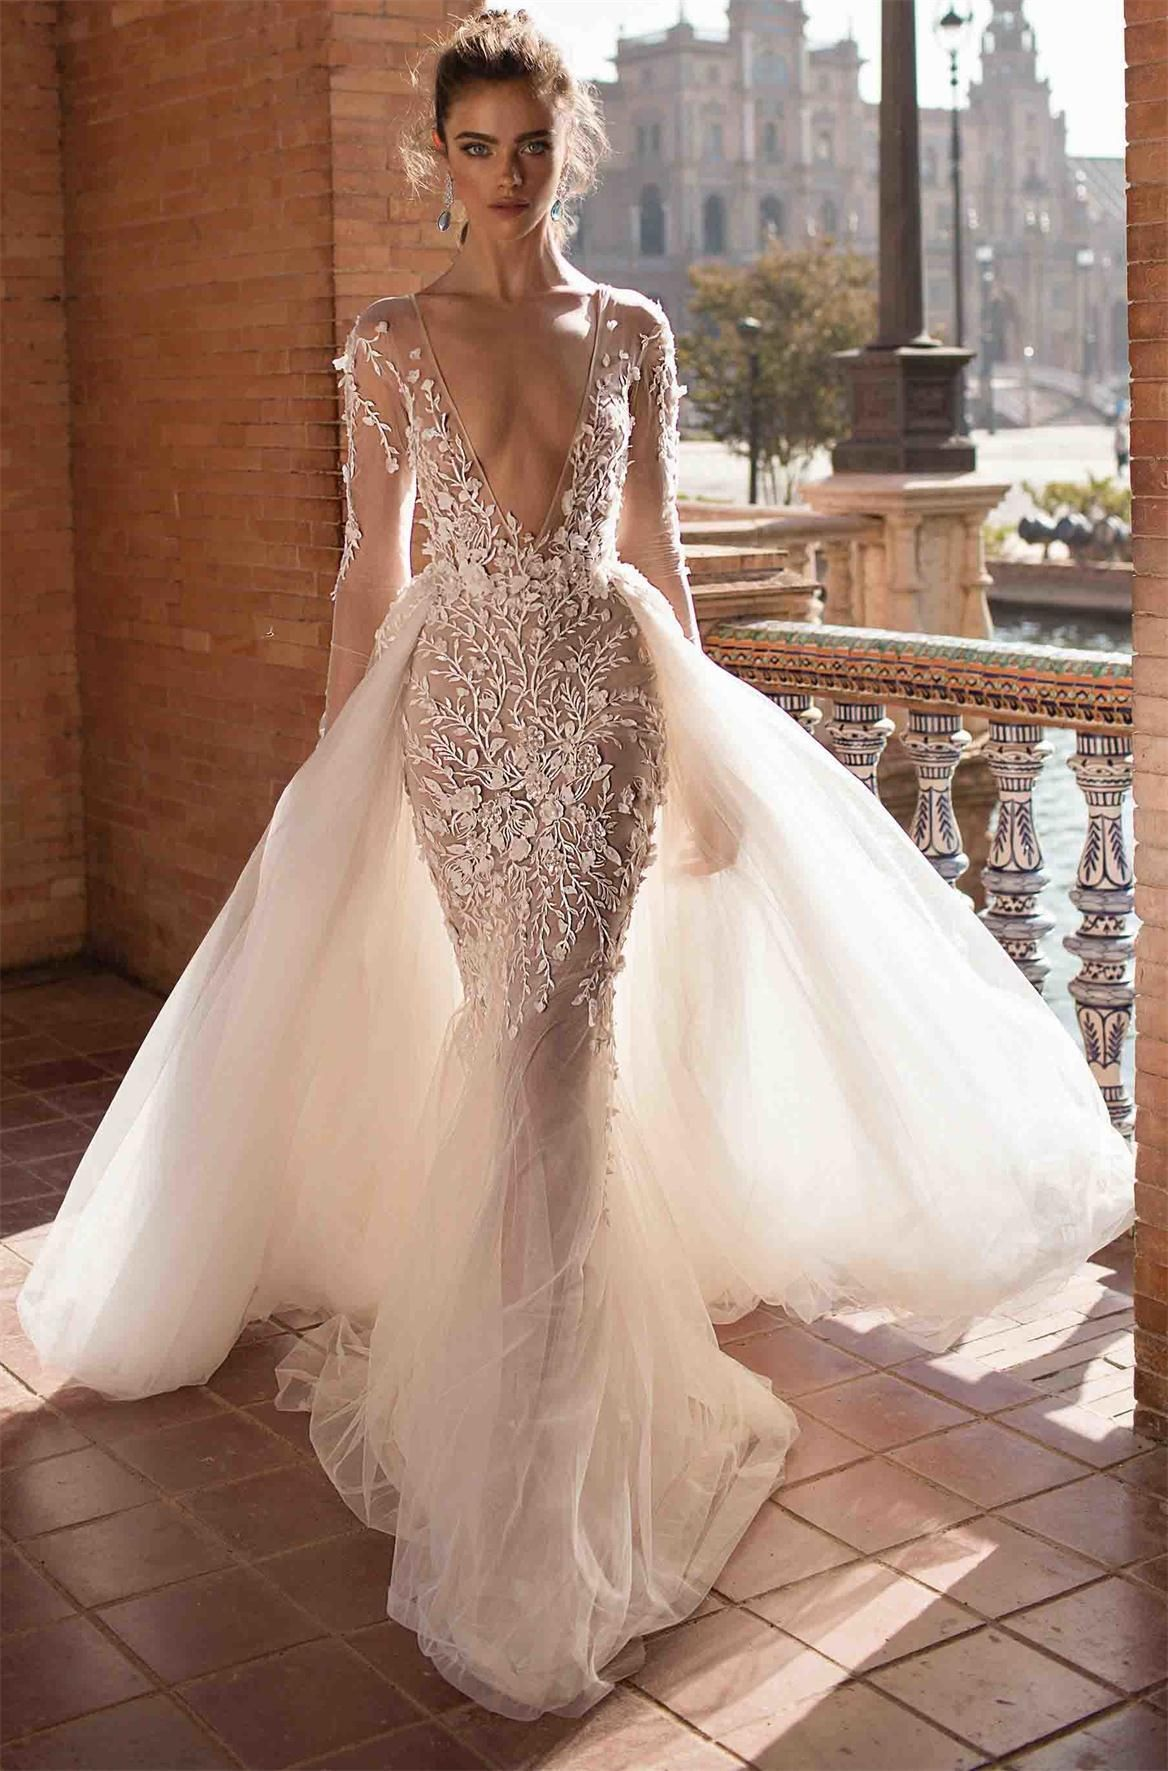 df1b39b0aae4a 2018 Newest Berta Wedding Dresses With Long Sleeve Lace Applique ...